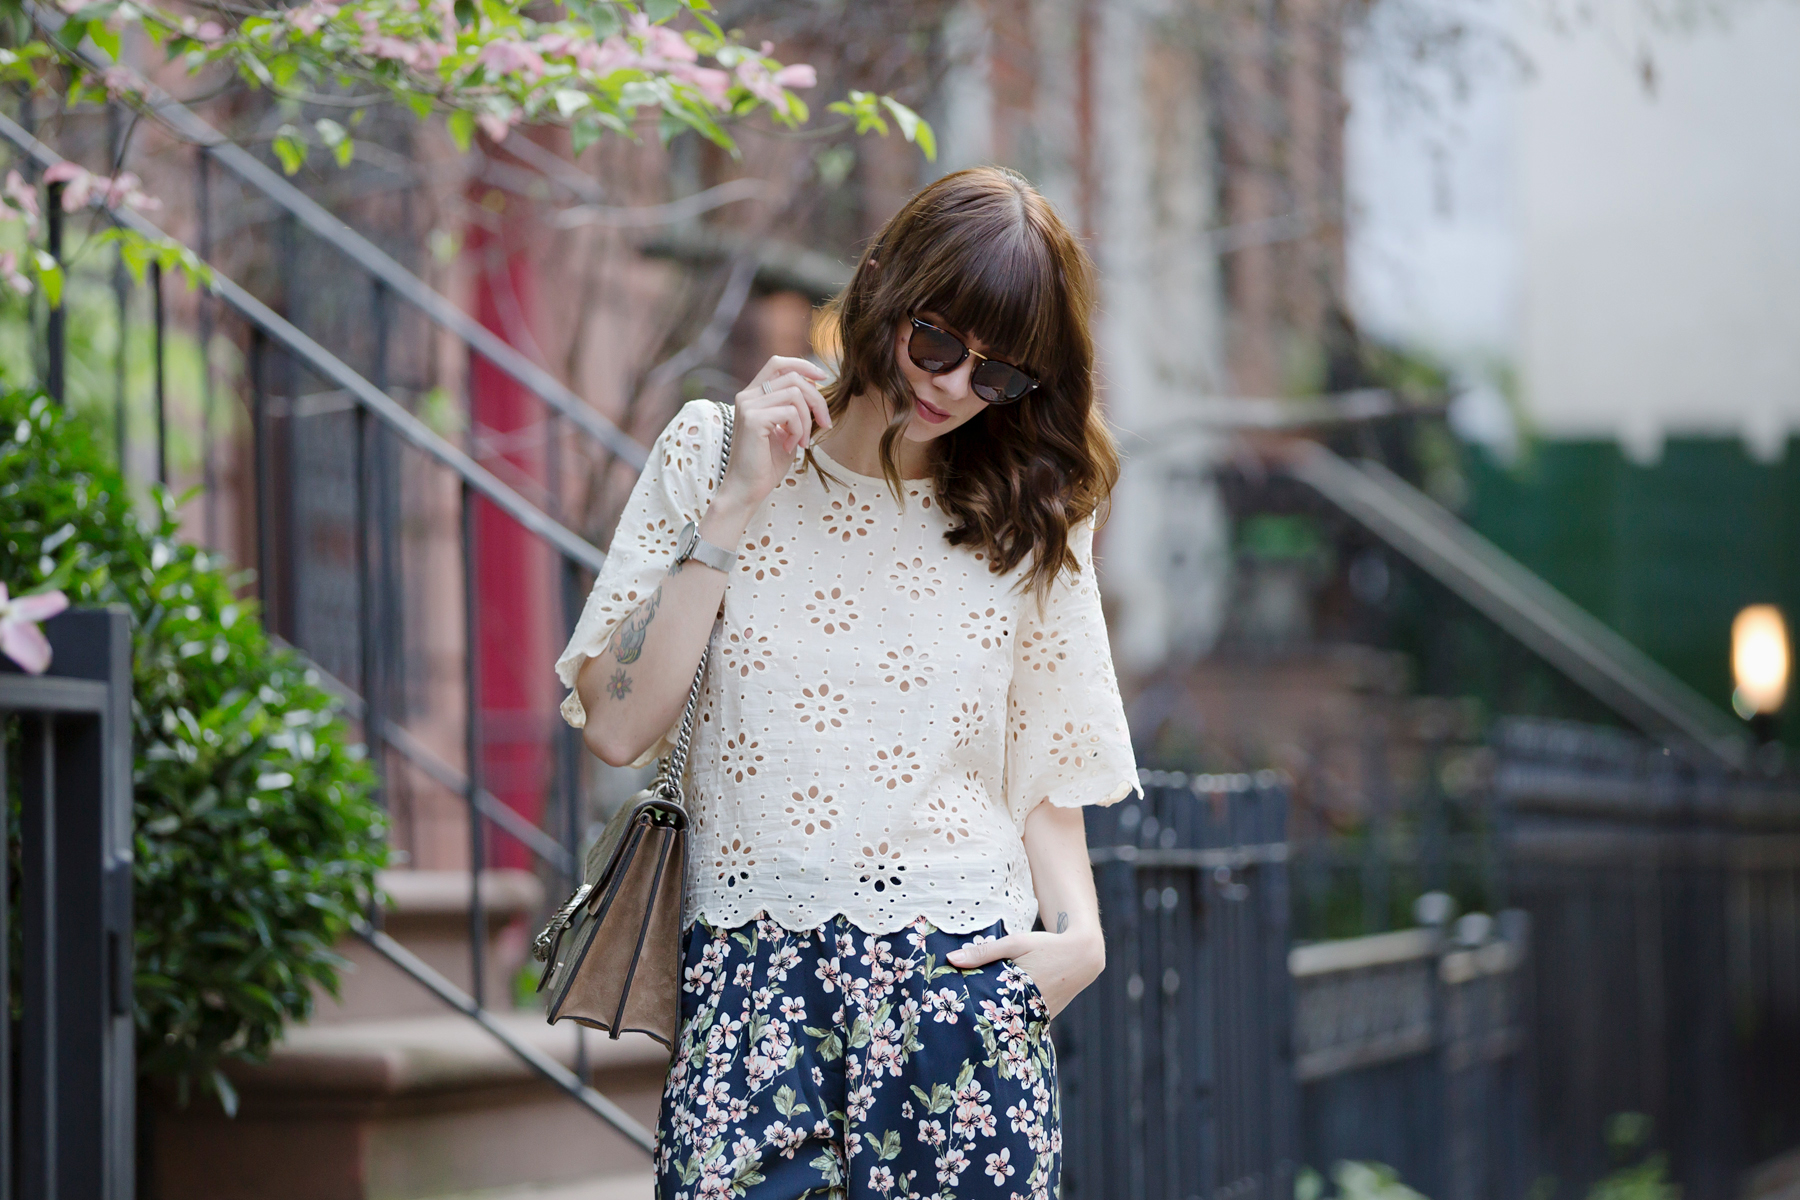 new york city streetstyle fashion fashionblogger mint&berry persol mister spex gucci dionysus luxury fashion styling look summer flowers floral cats & dogs modeblog ricarda schernus fashionblogger germany 2